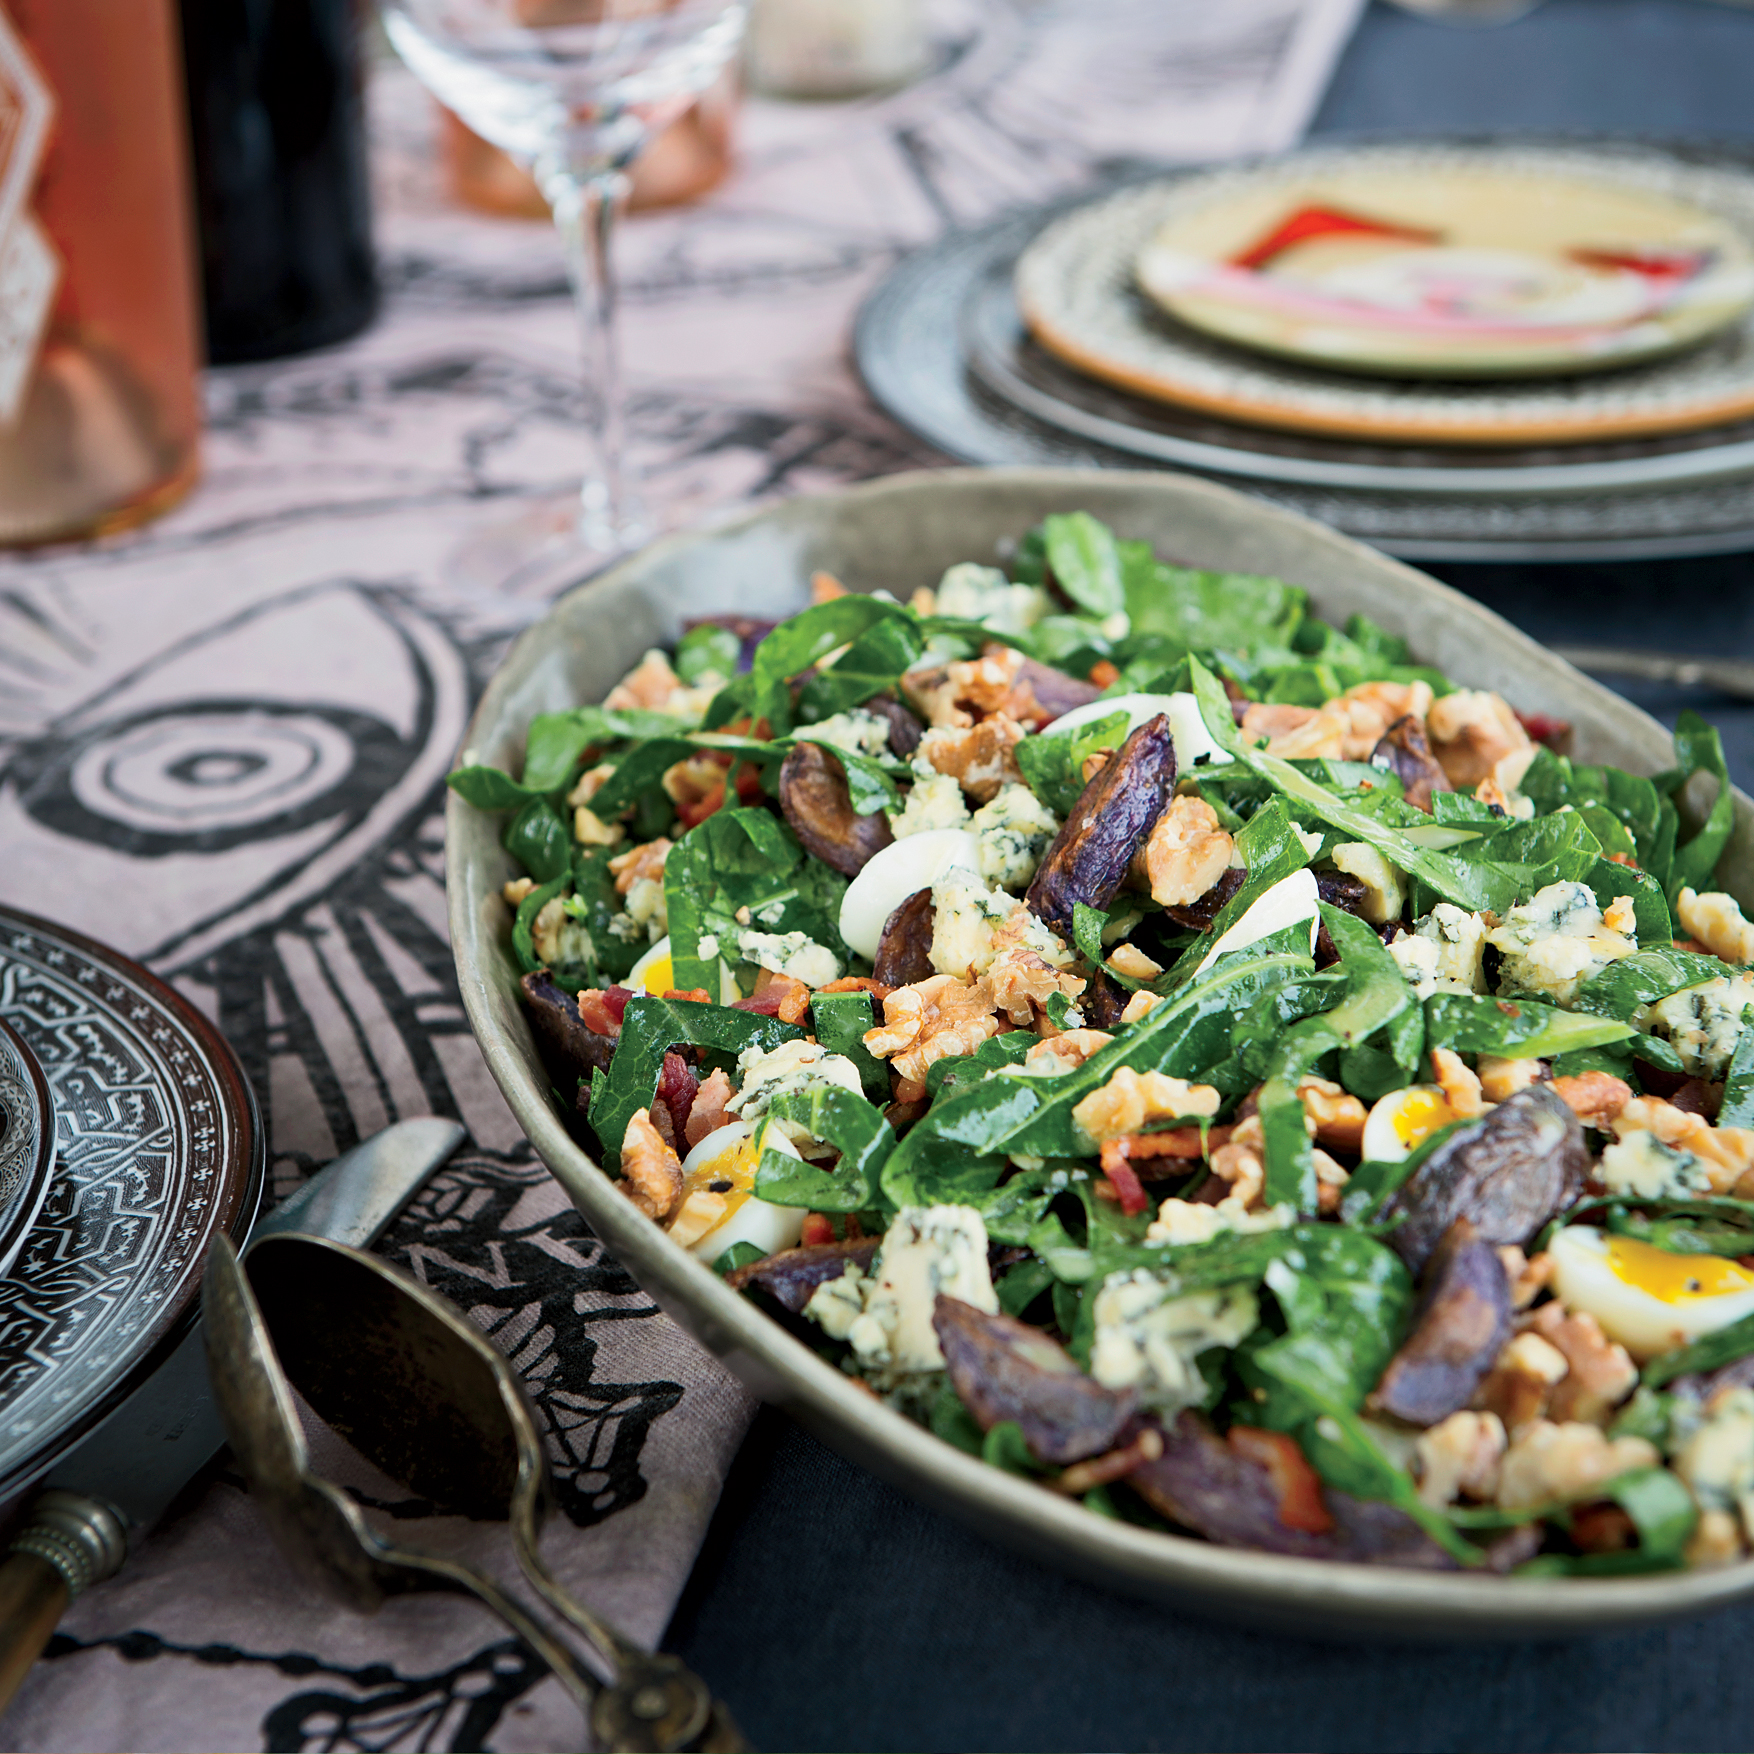 201404-r-collard-greens-blue-potato-and-bacon-salad.jpg